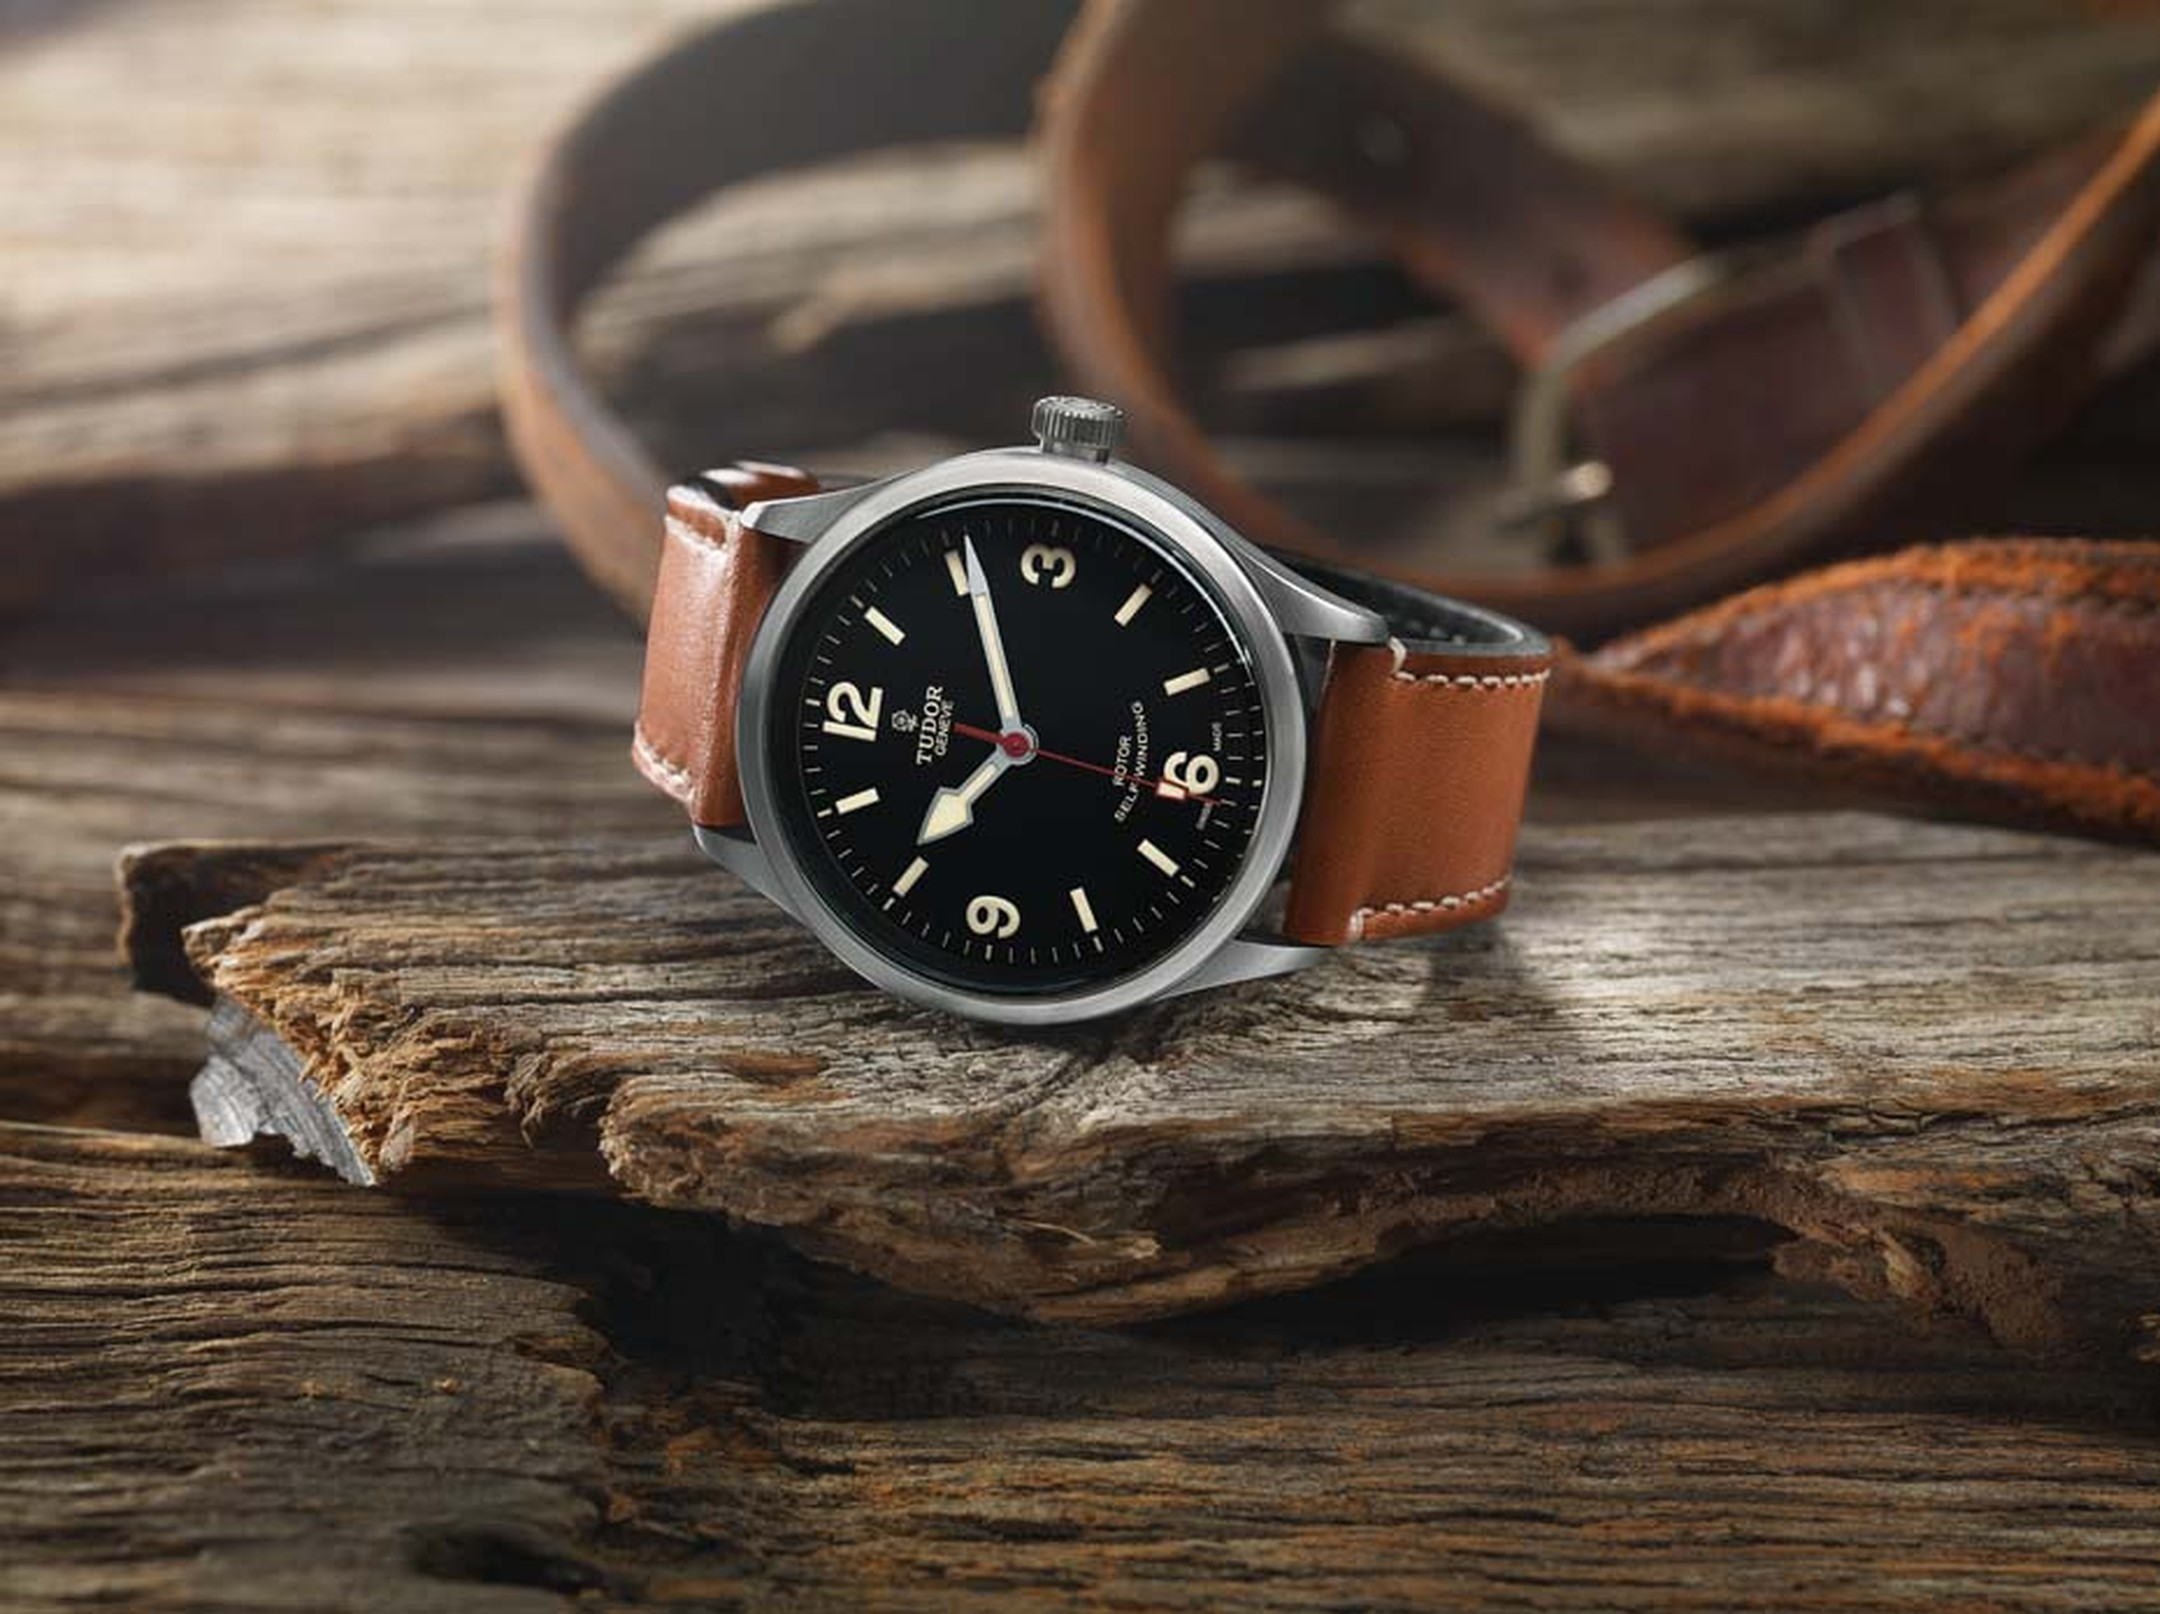 The new Tudor Heritage Black Bay watch dive watches are based on the design of the 1954 Tudor Submariner watch.